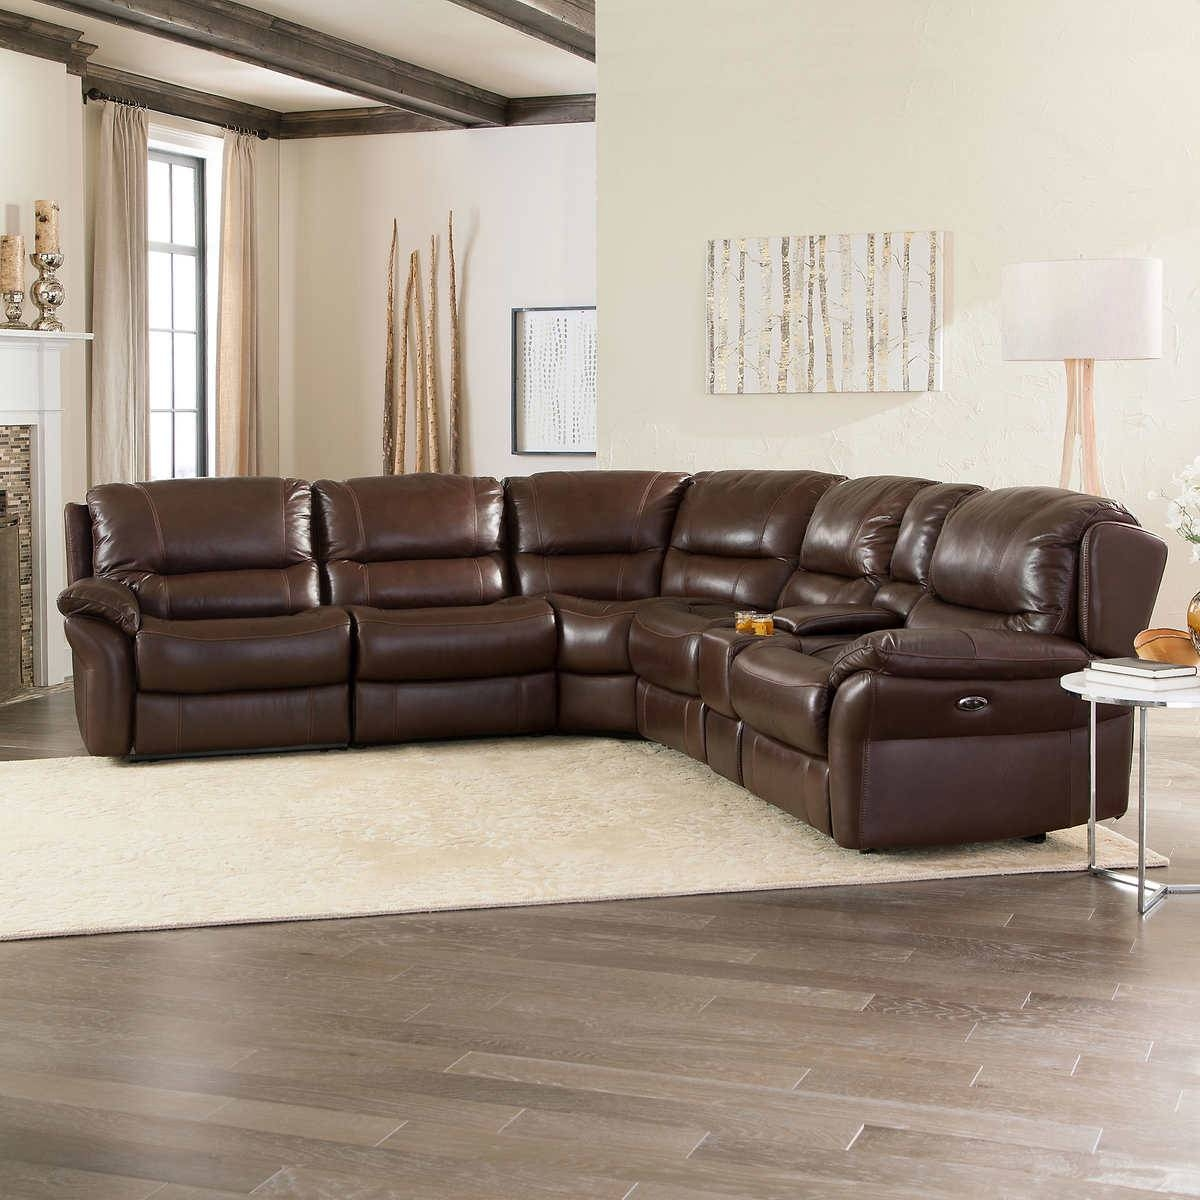 6 Piece Leather Sectional Sofa Stacey Leather 6 Piece